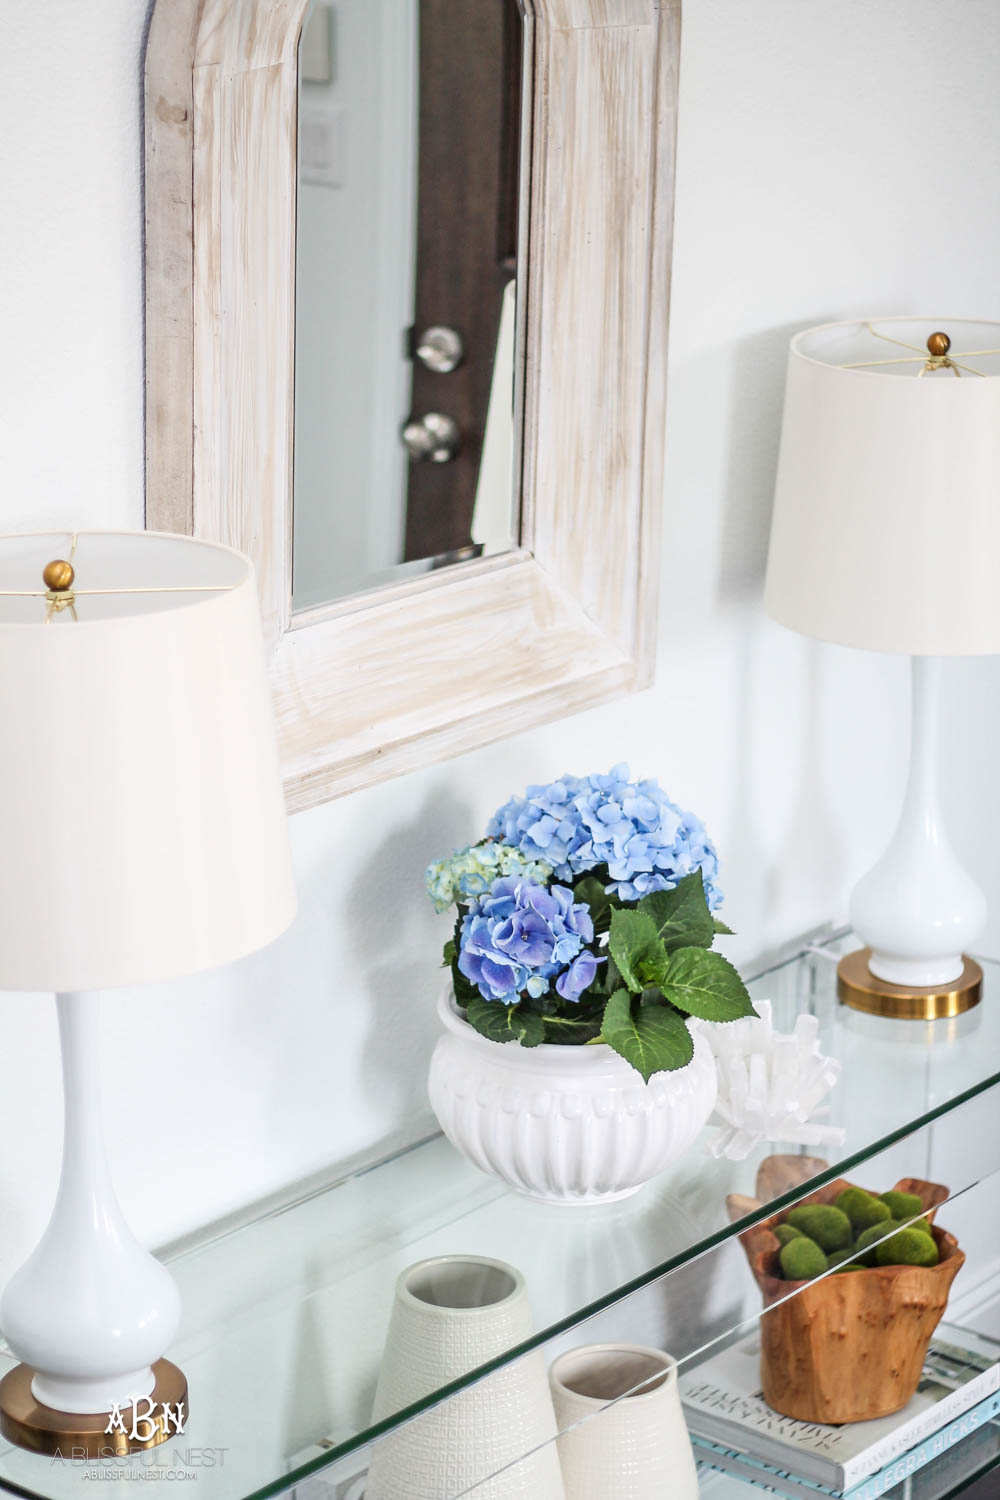 These beautiful hydrangeas really make for effortless spring decorating! #ABlissfulNest #springideas #springdecor